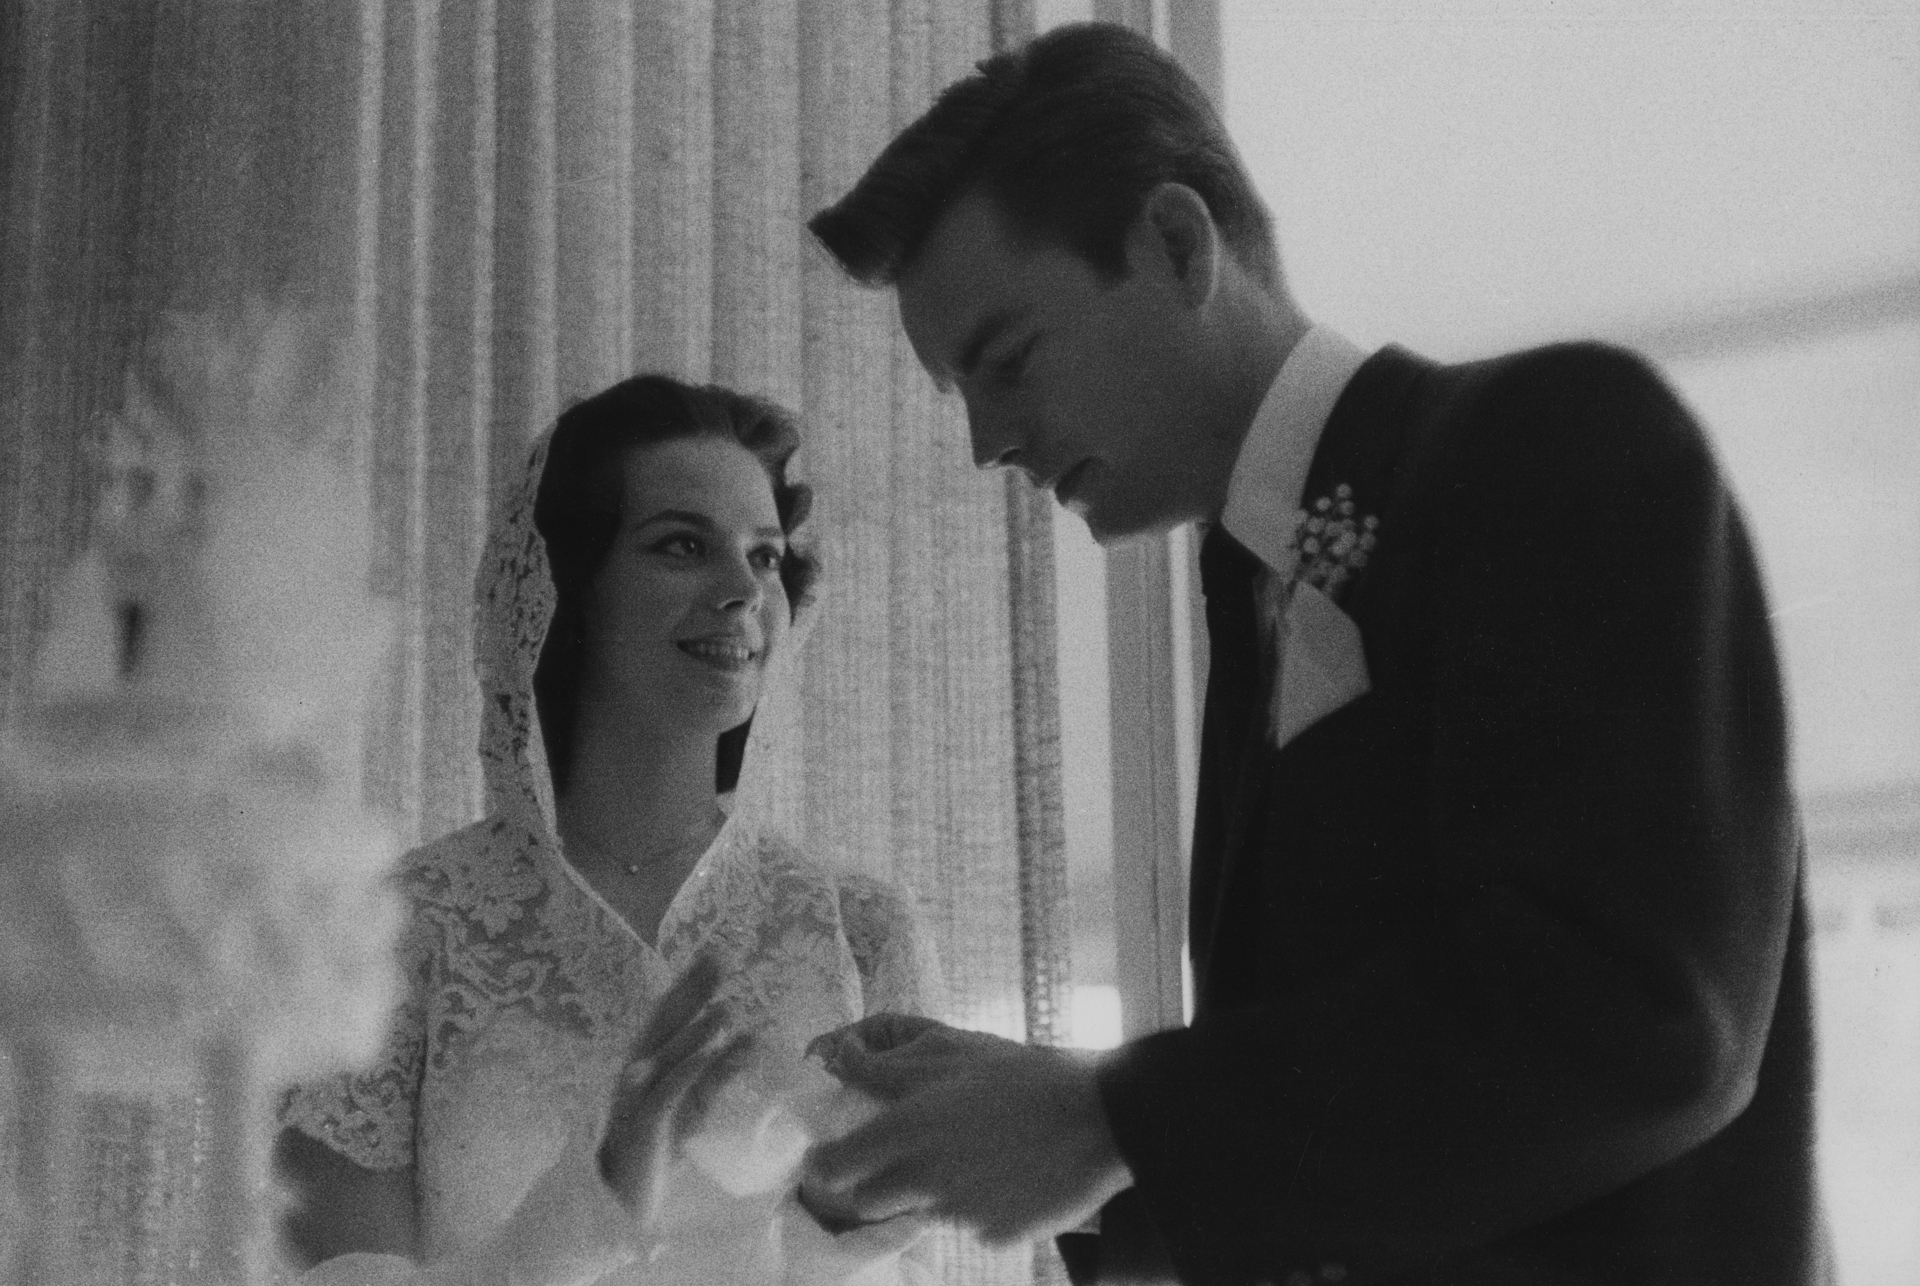 'Natalie Wood: What Remains Behind' Review: Documentary Wants to Tell All but Feels Too Controlled